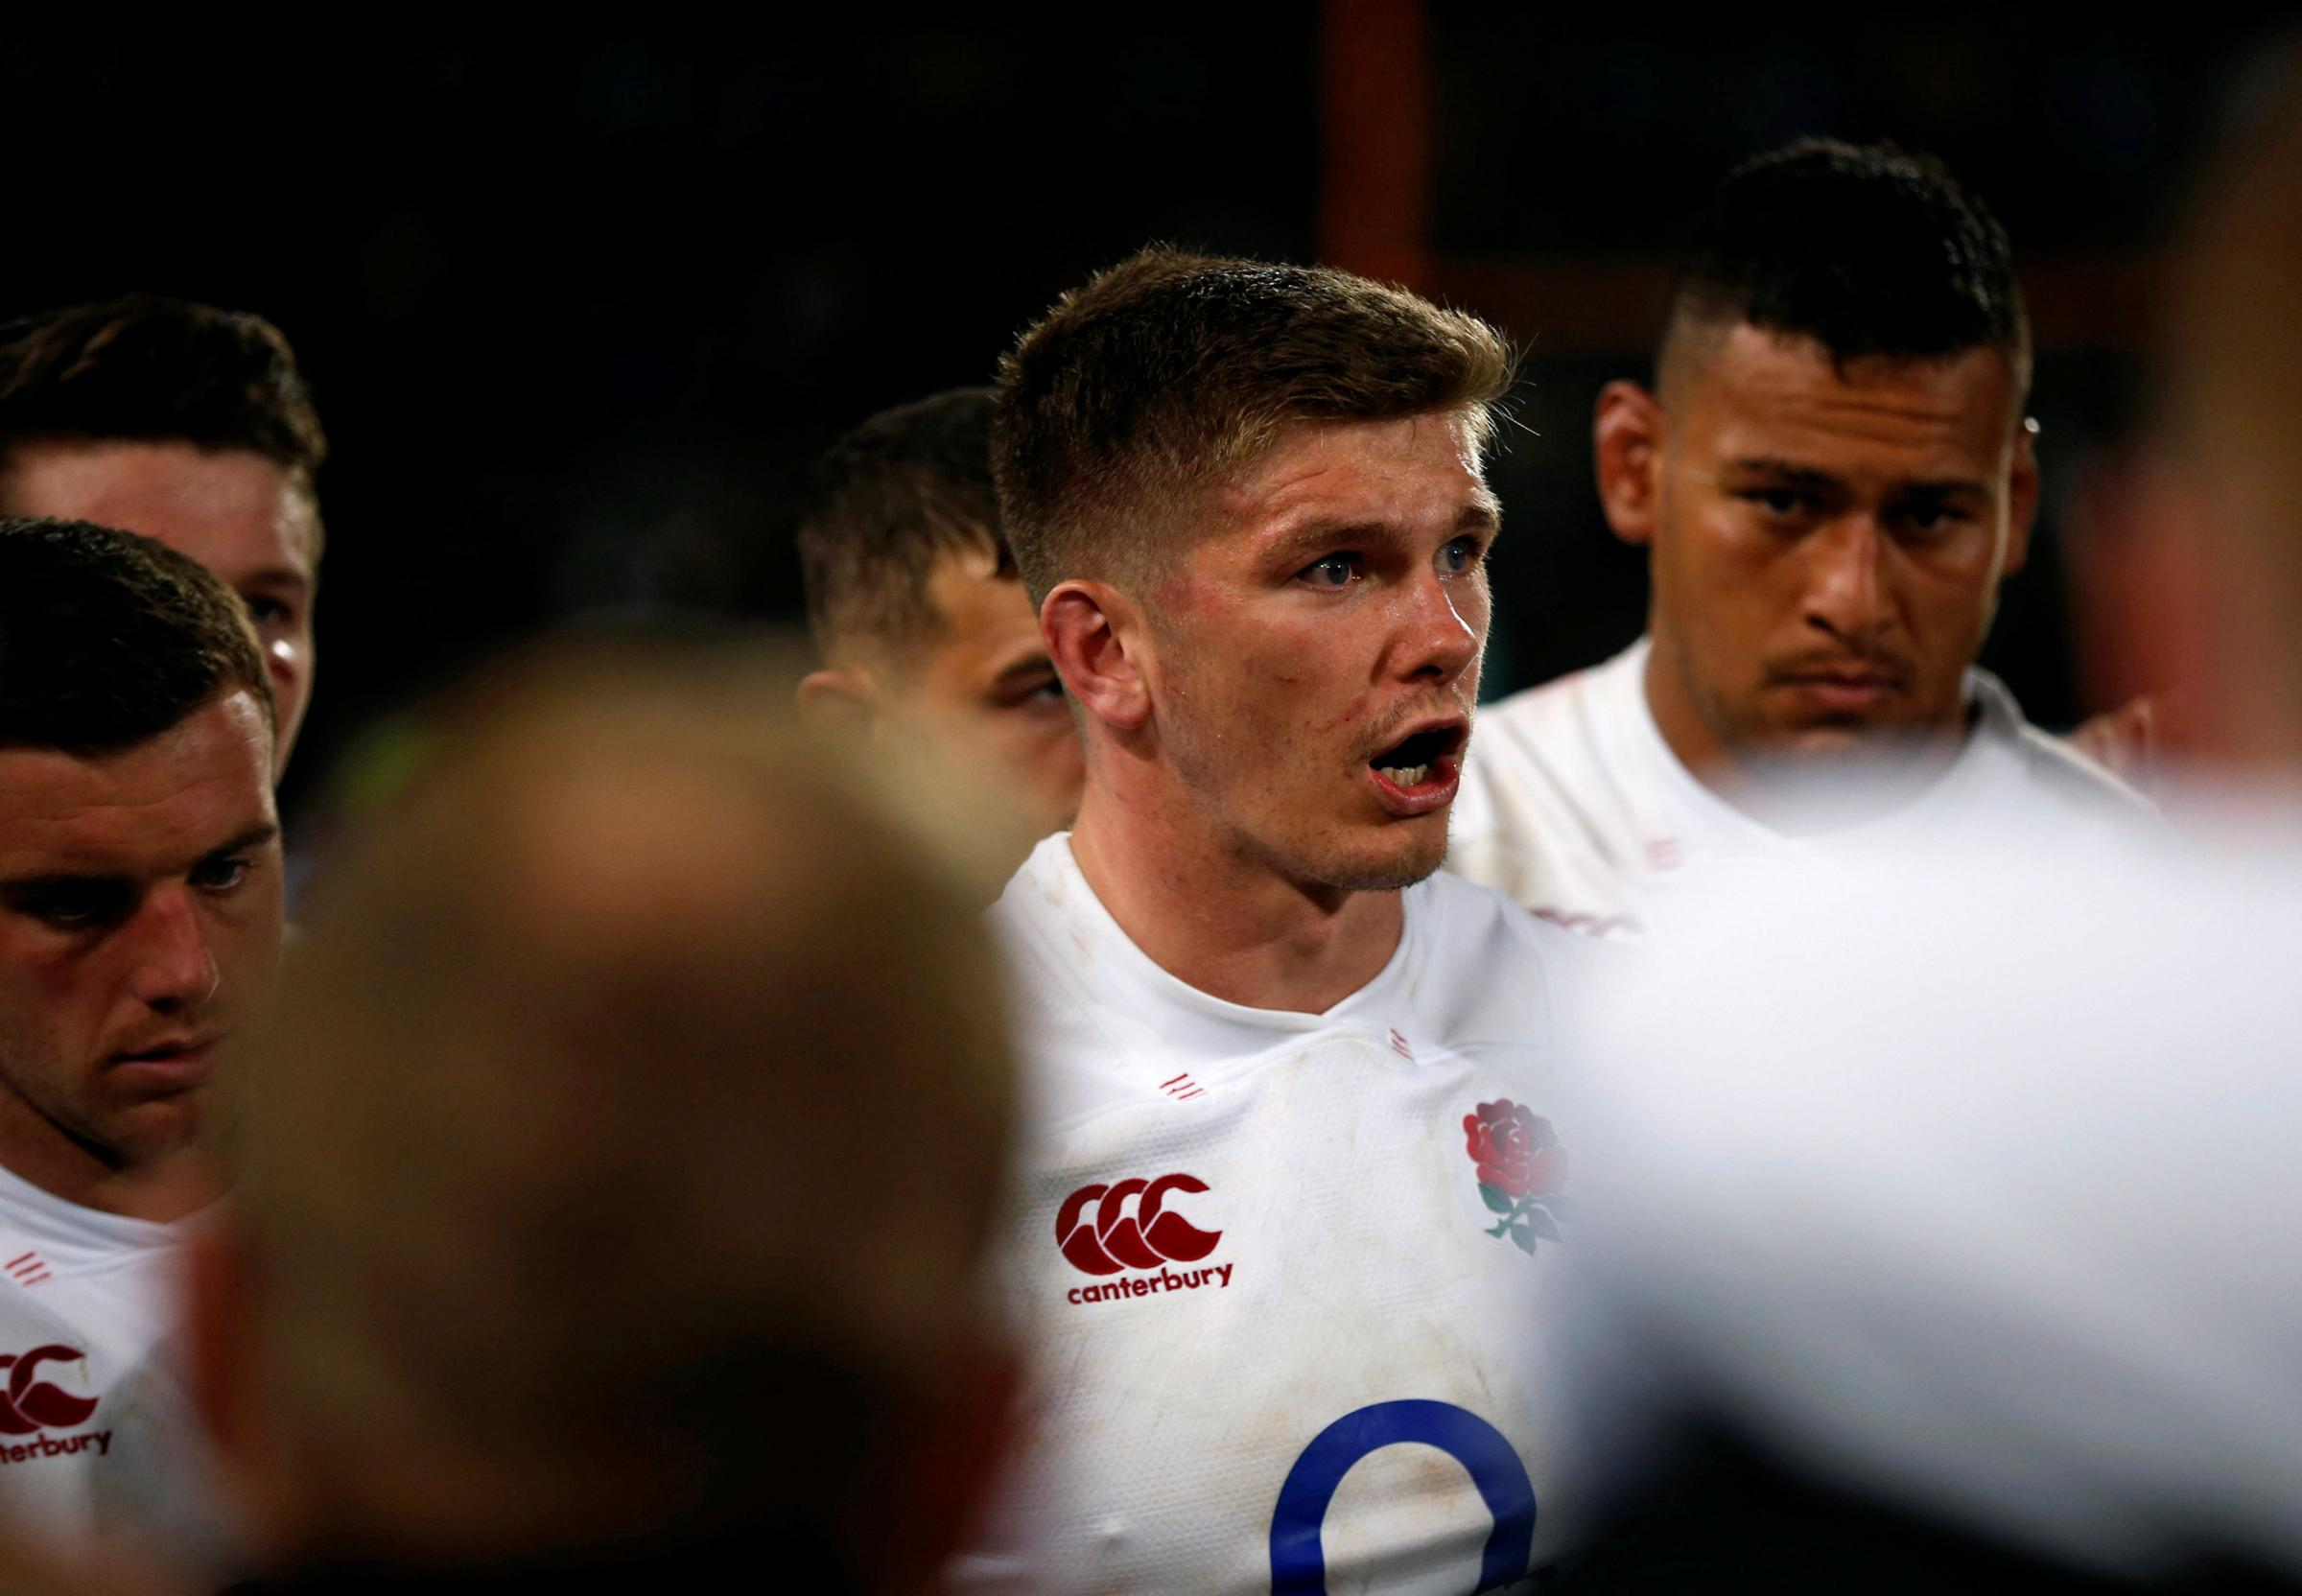 Owen Farrell will co-captain England on Saturday. Picture: Action Images